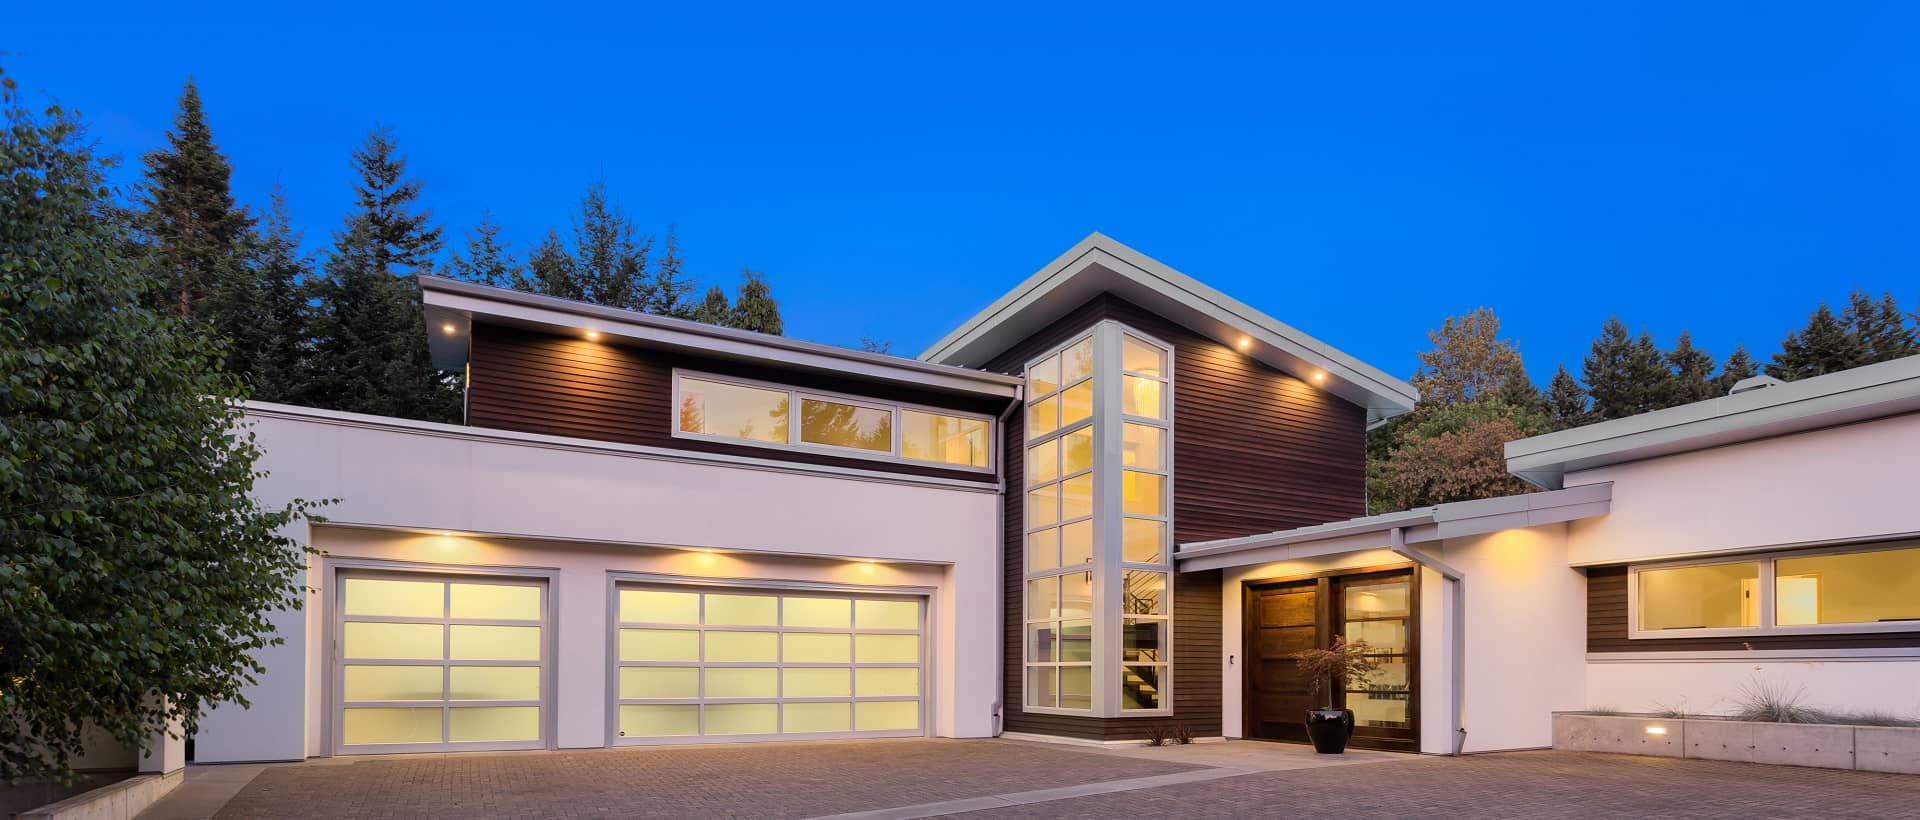 Garage Door Bent Panel Repair Mtm Garage Door Repair Services